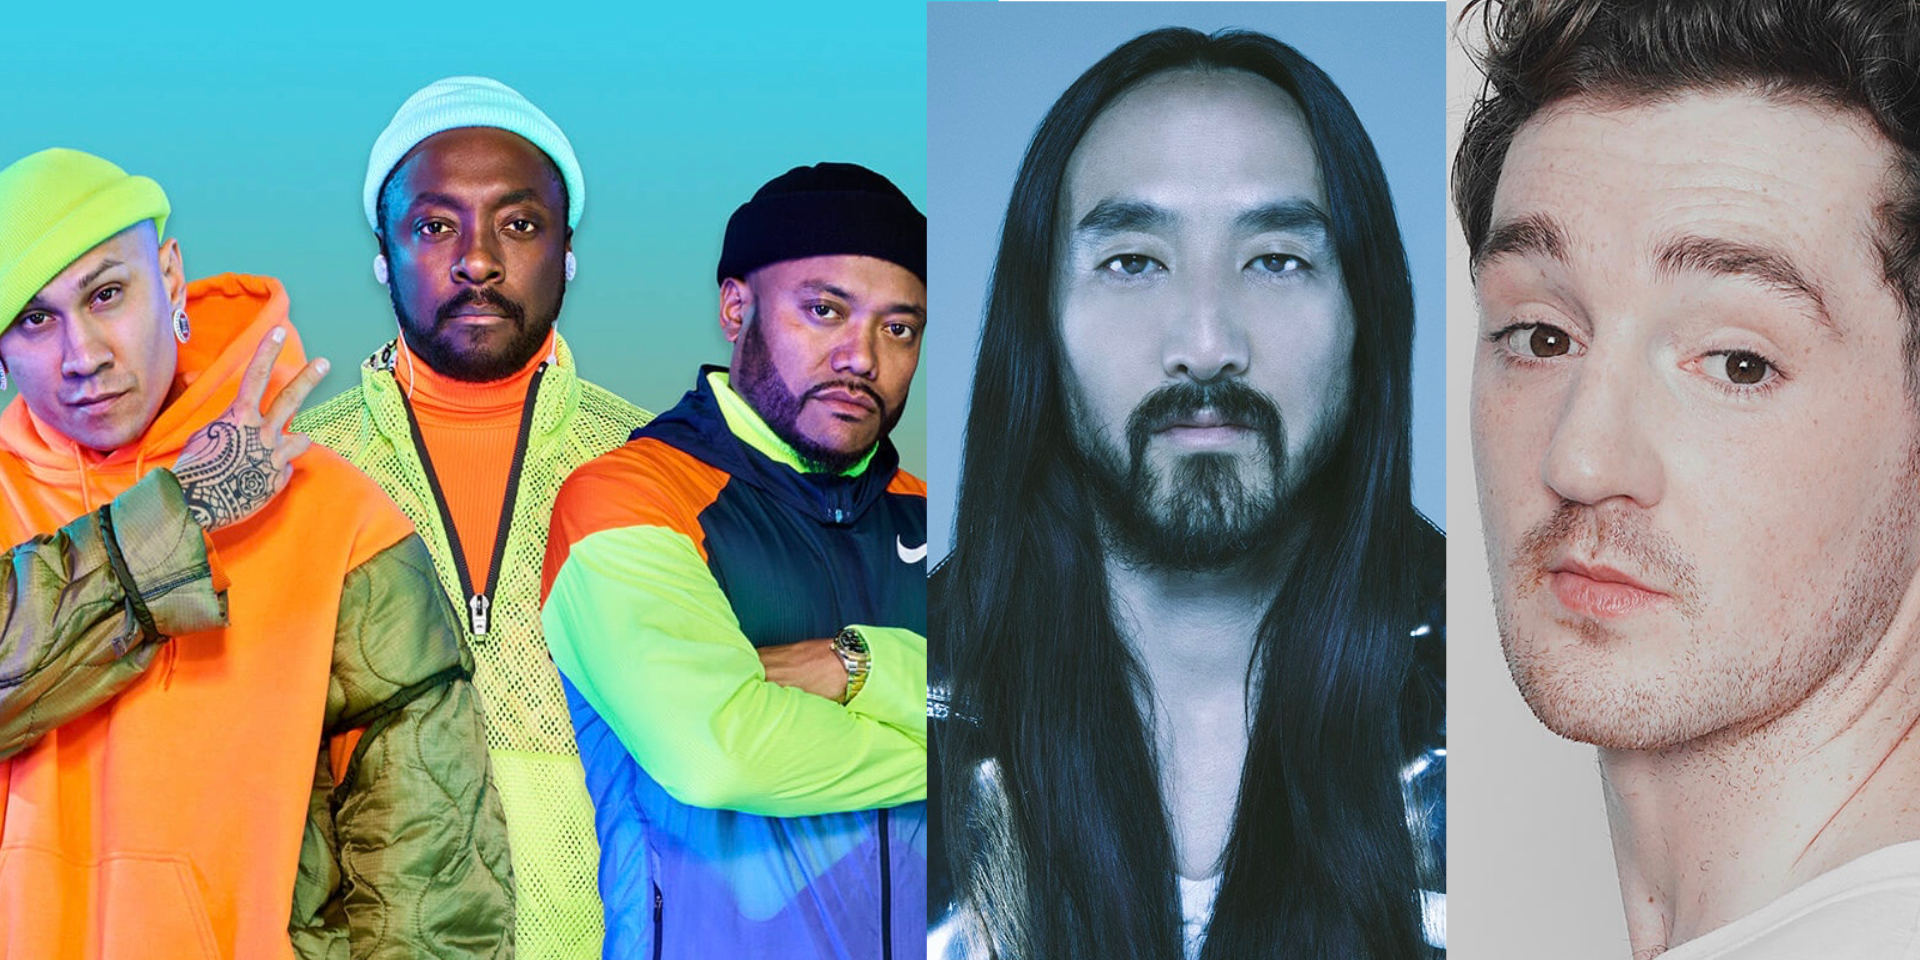 Supersonic 2020 cancellation announced - lineup included Black Eyed Peas, Clean Bandit, Steve Aoki, and more